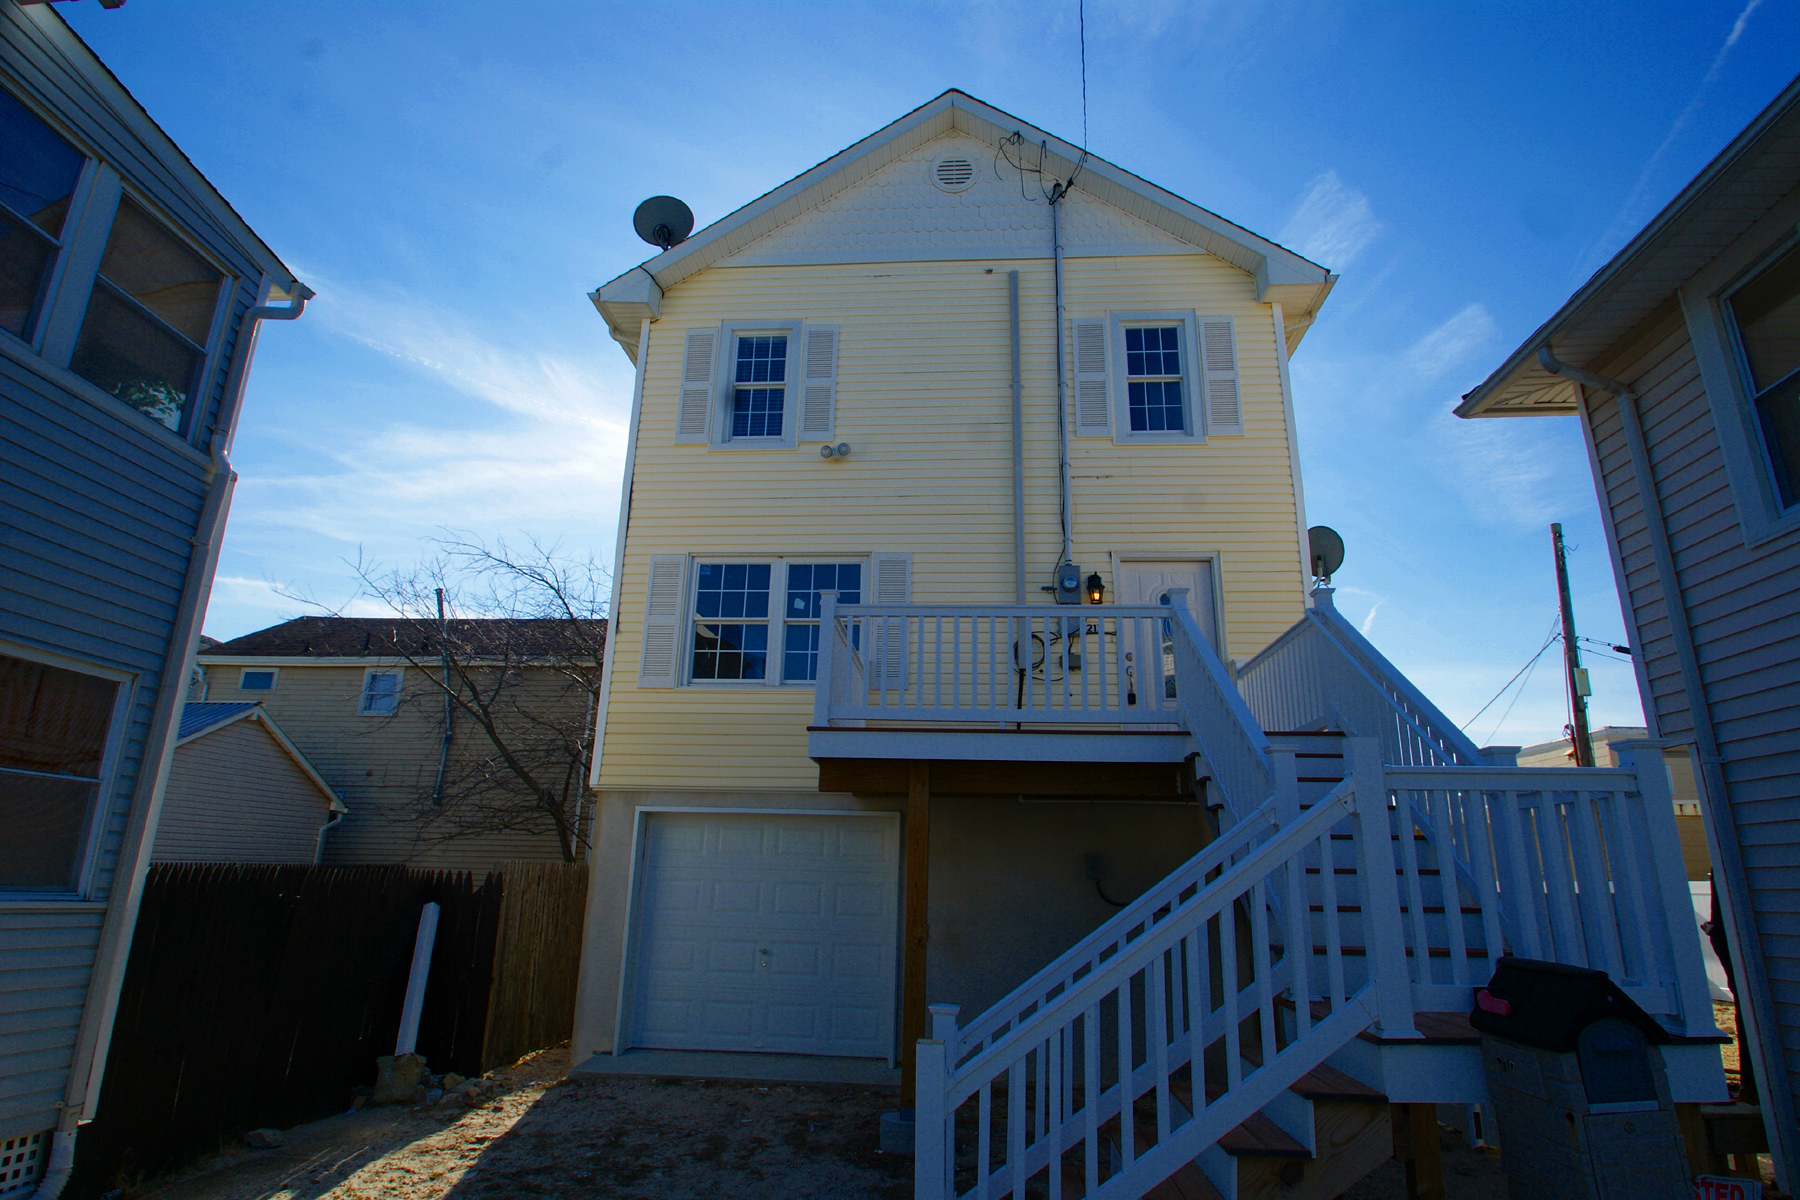 Casa Unifamiliar por un Venta en Exceptional Remodeled Raised Home 217 Webster Avenue Seaside Heights, Nueva Jersey 08751 Estados Unidos